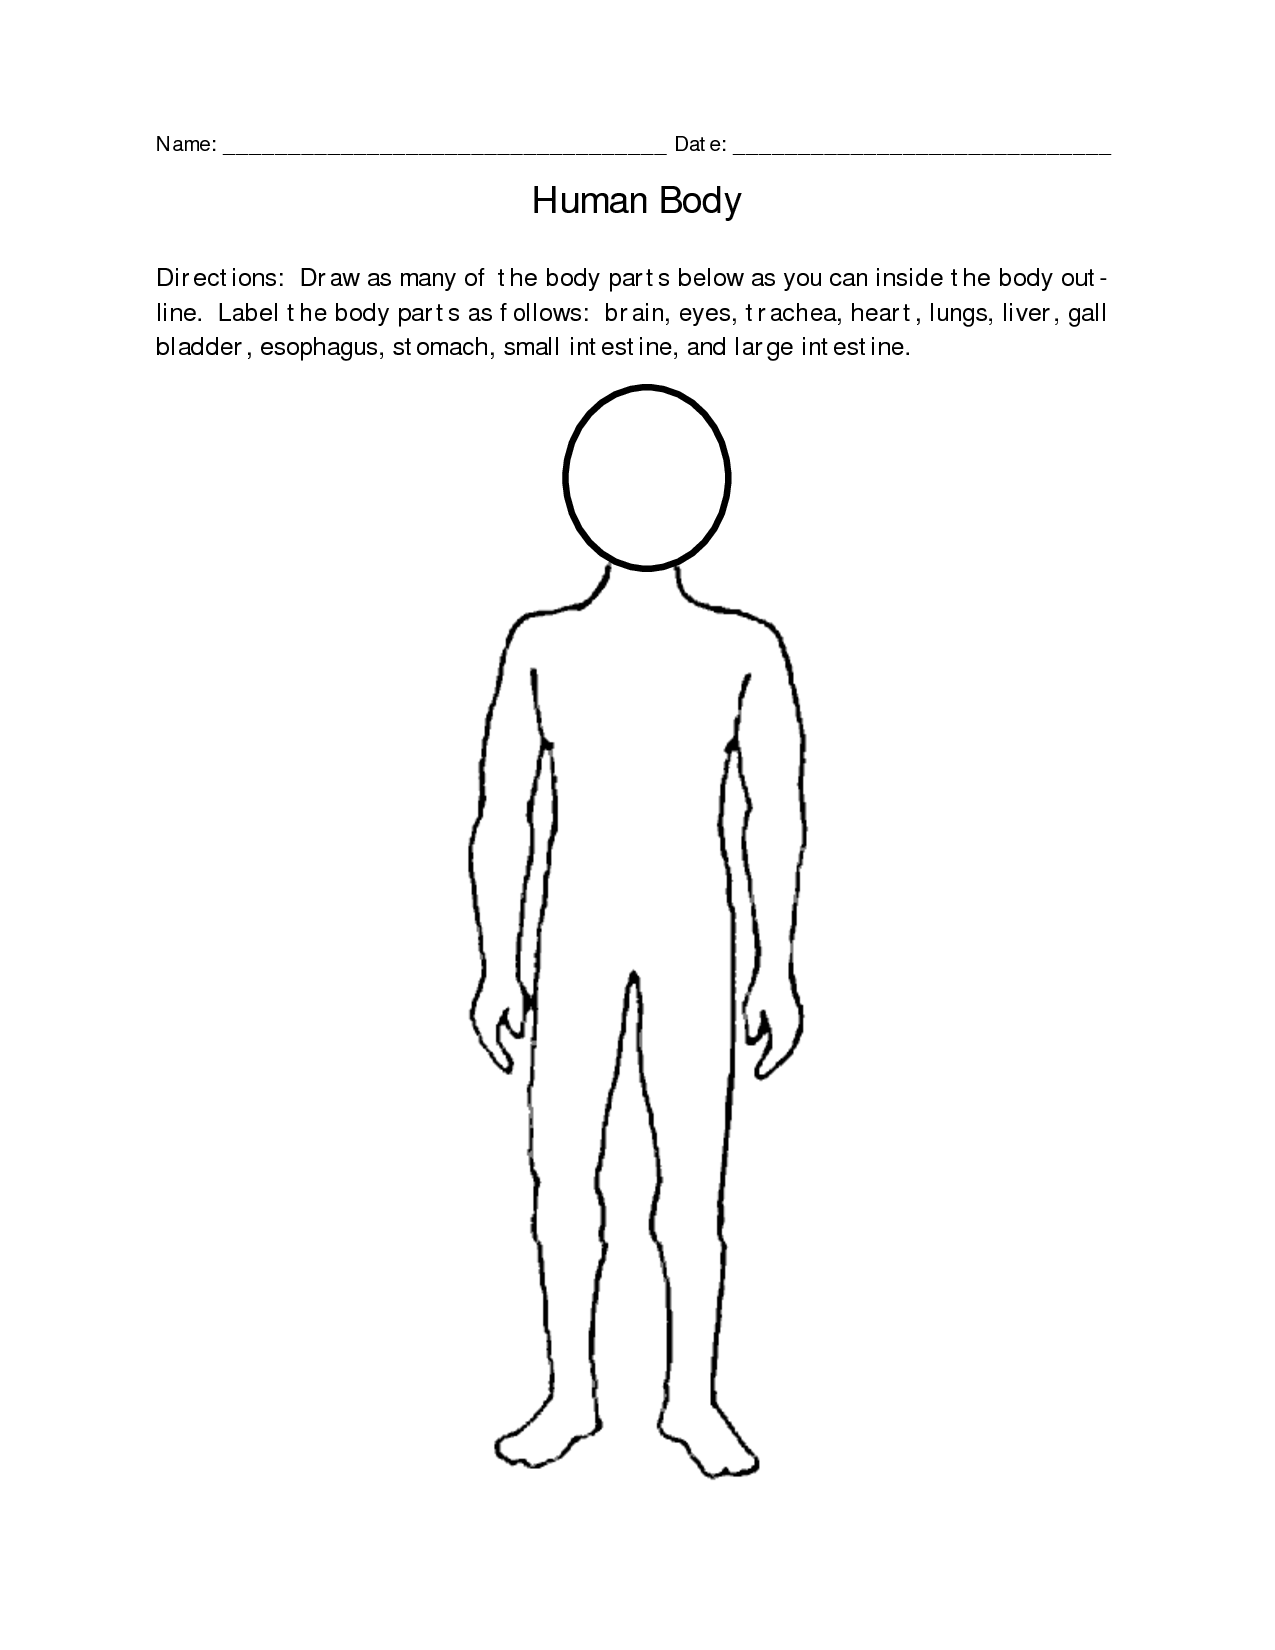 Human Body Diagram For Kids